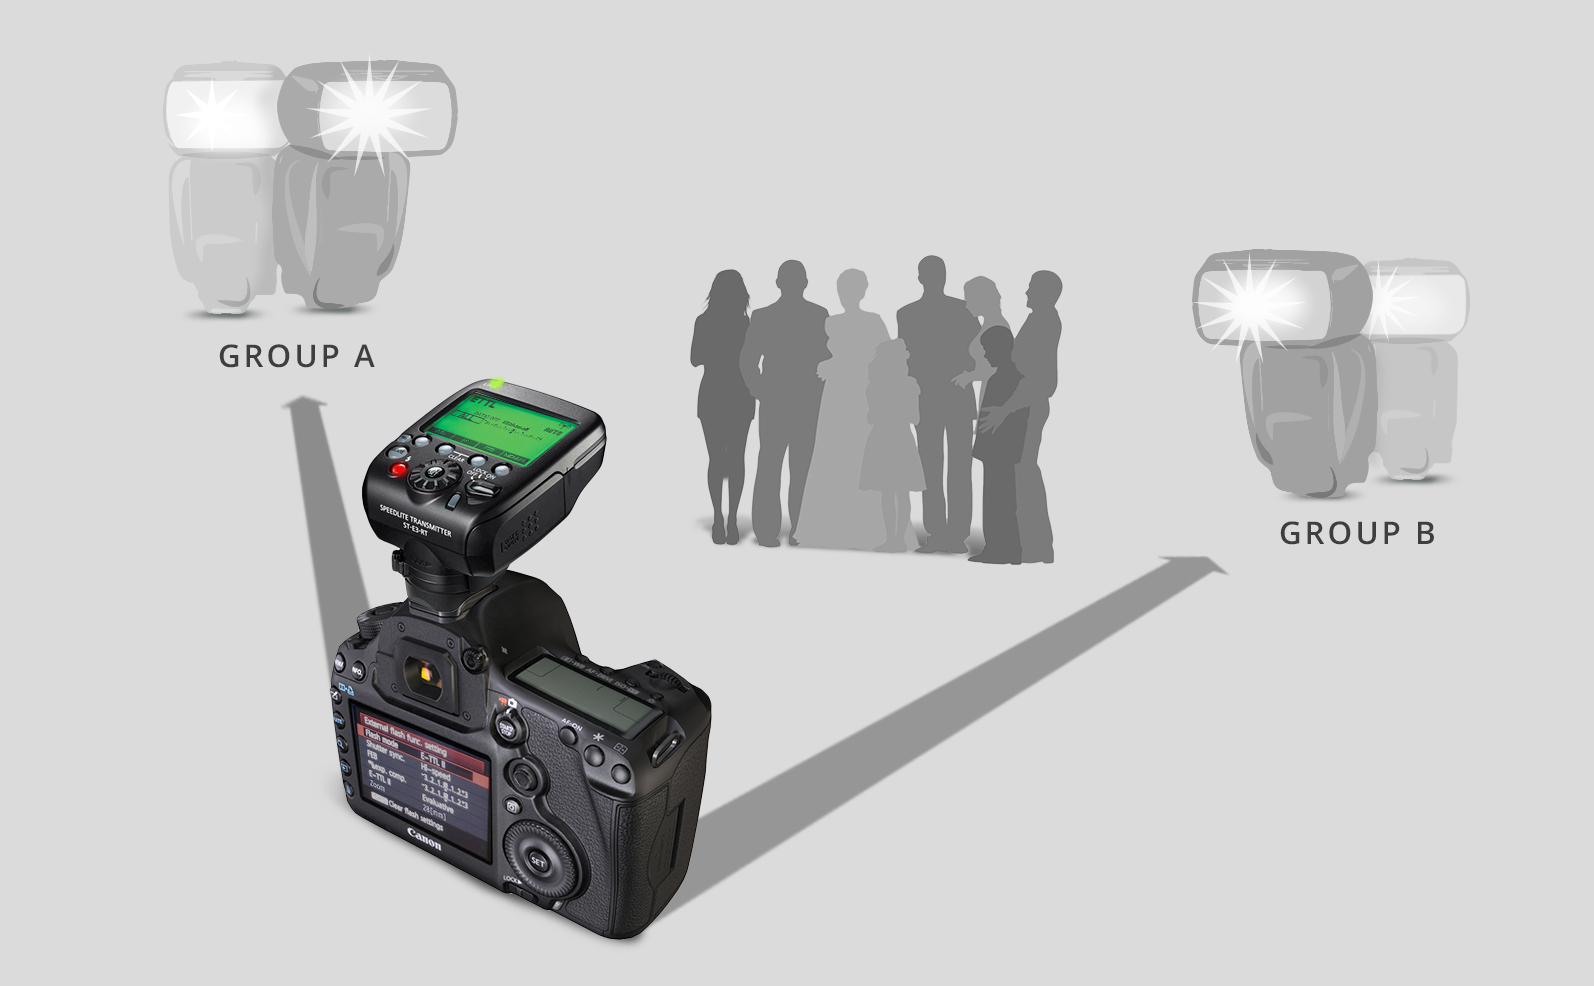 Off Camera Flash Systems For The Wedding Photographer Bh Explora Looked Up Wiring Diagram Flex Reverse Using Your With Manual Settings Wirelessly Is A Straightforward Albeit More Difficult Way To Remotely Trigger It Due